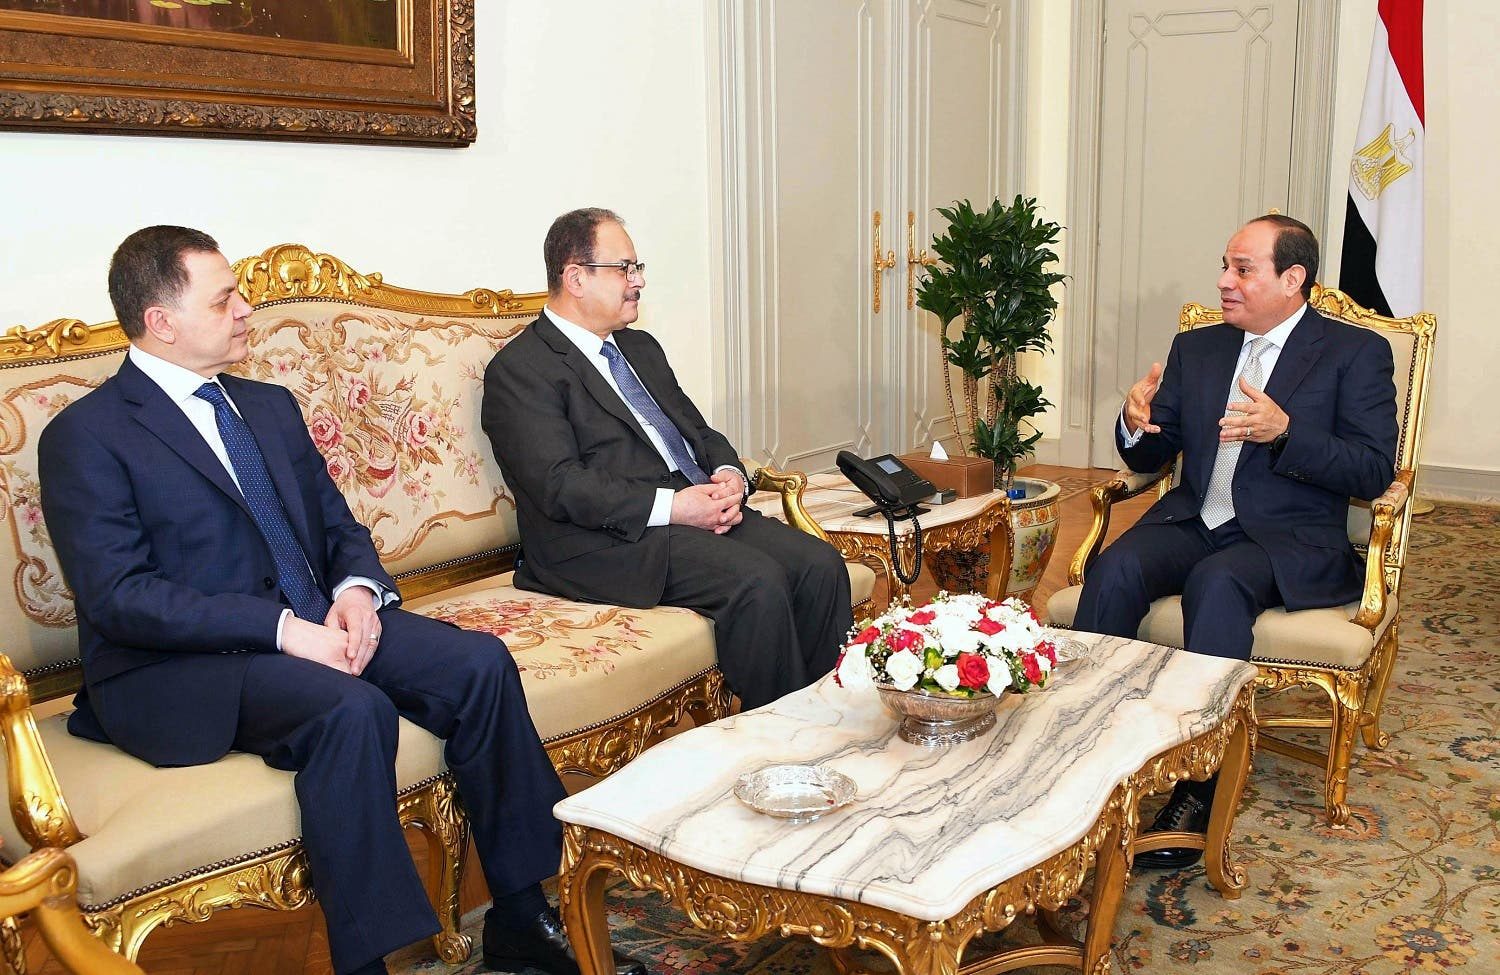 Sisi (R) meeting with his newly-appointed Interior Minister Mahmoud Tawfiq (L), and his predecessor Magdi Abdel Ghaffar (C) at the presidential palace in Cairo. (AFP)